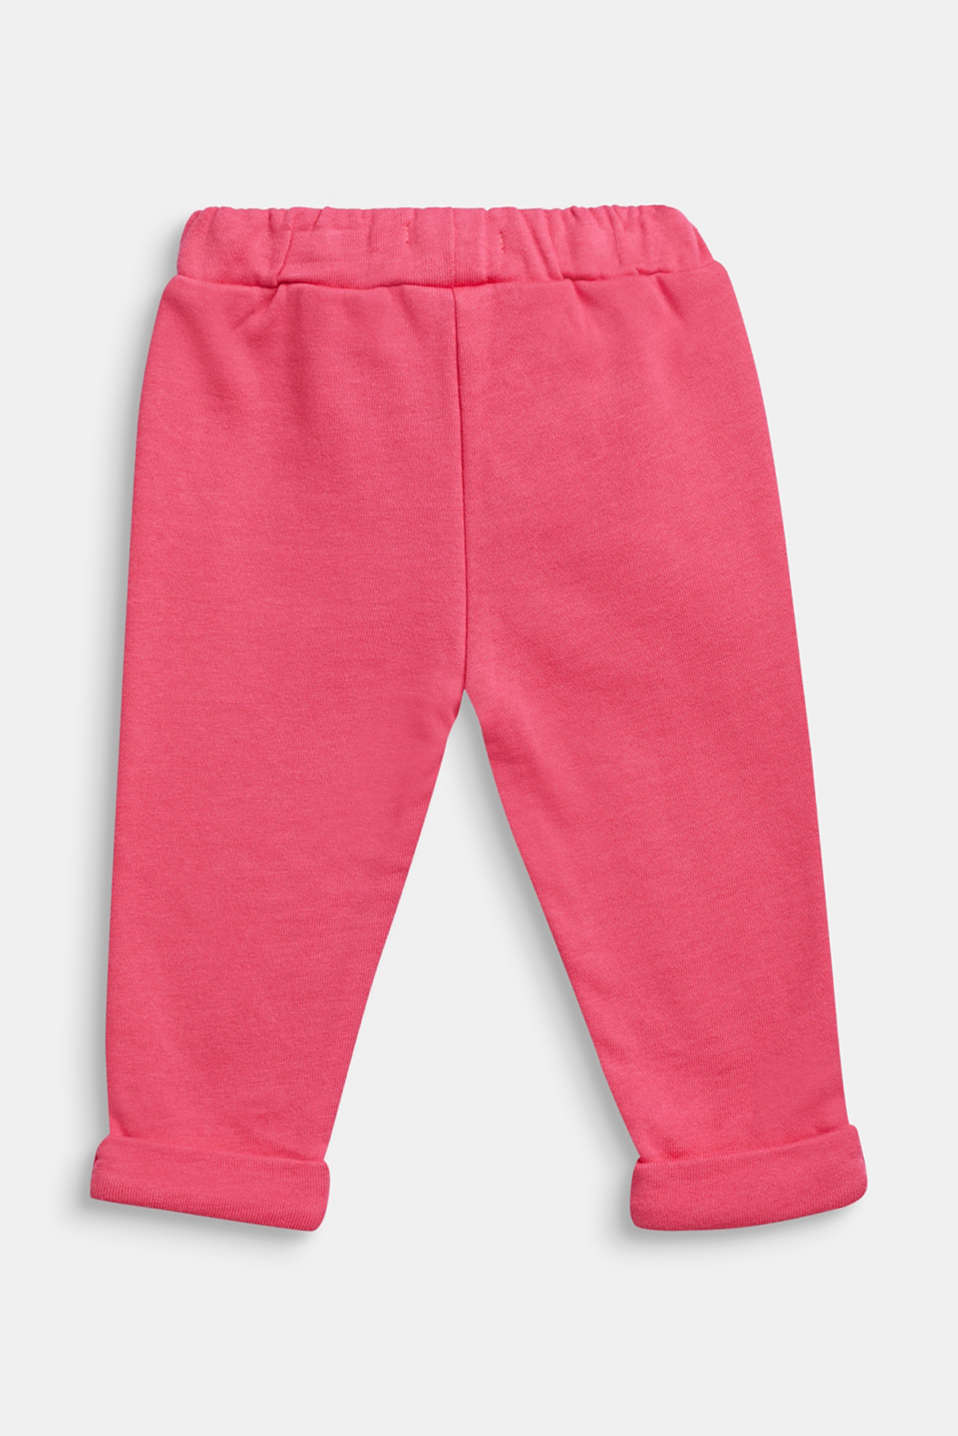 Sweatshirt trousers with glittering drawstring ties, 100% cotton, LCCANDY PINK, detail image number 1